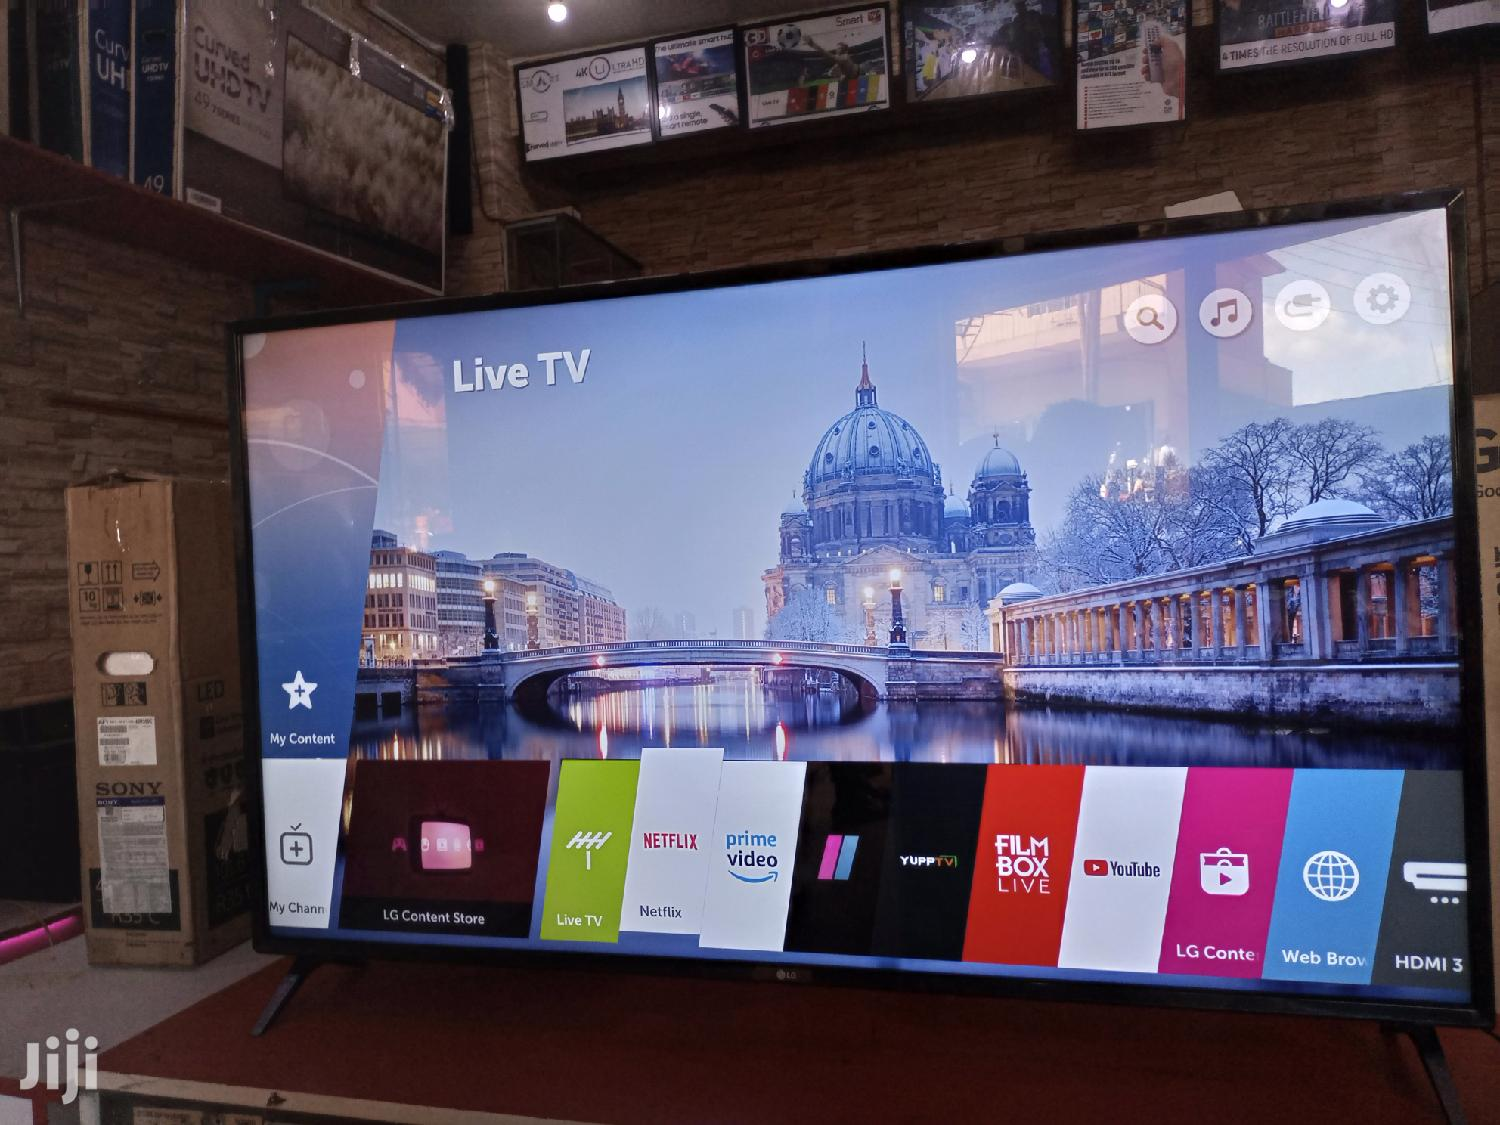 LG Smart Uhd Digital Web Flat Screen TV 55 Inches | TV & DVD Equipment for sale in Kampala, Central Region, Uganda